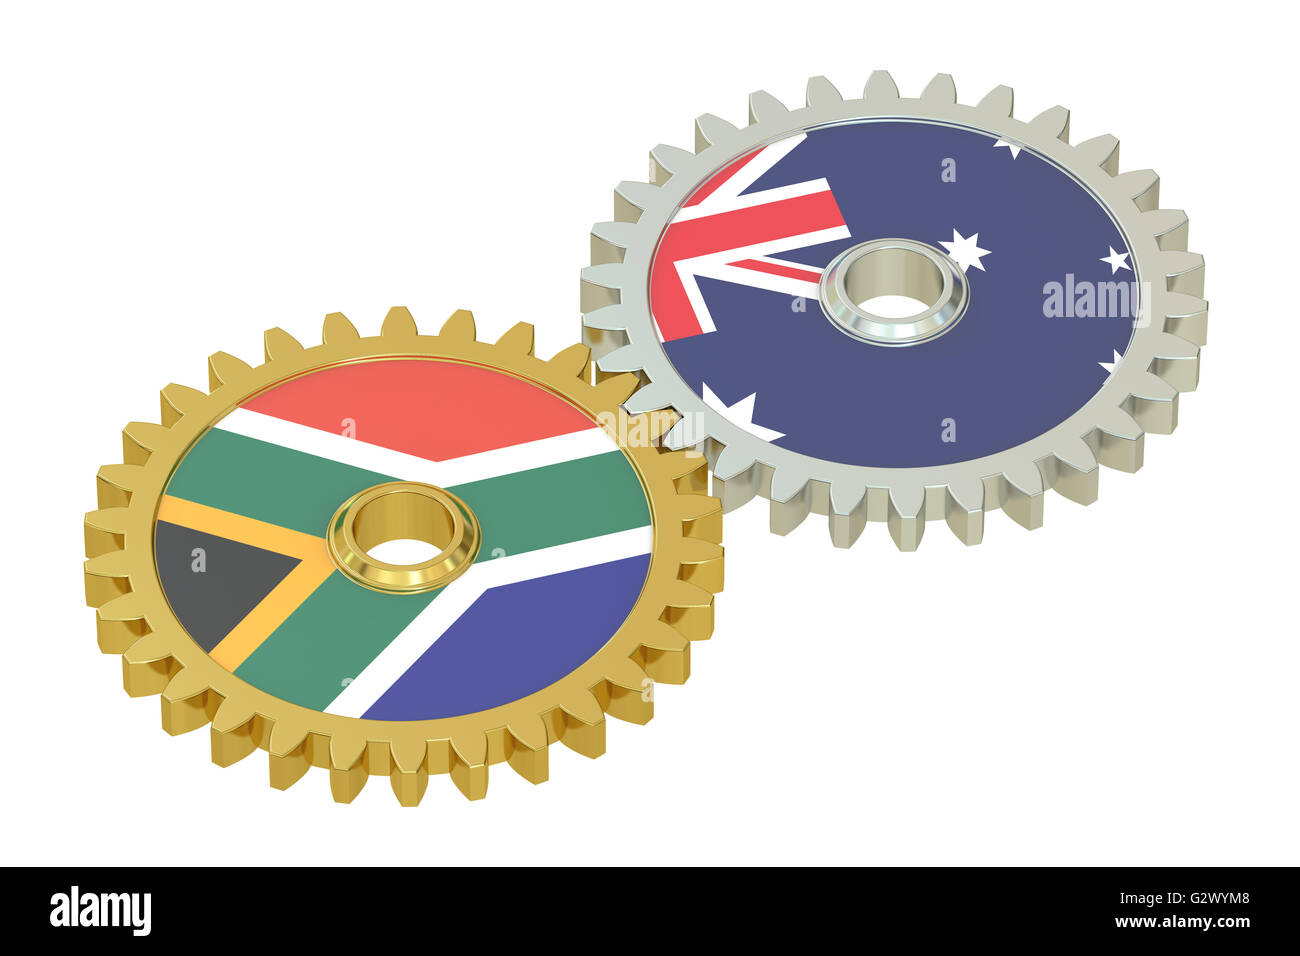 South Africa and Australia relations concept, flags on a gears. 3D rendering isolated on white background - Stock Image